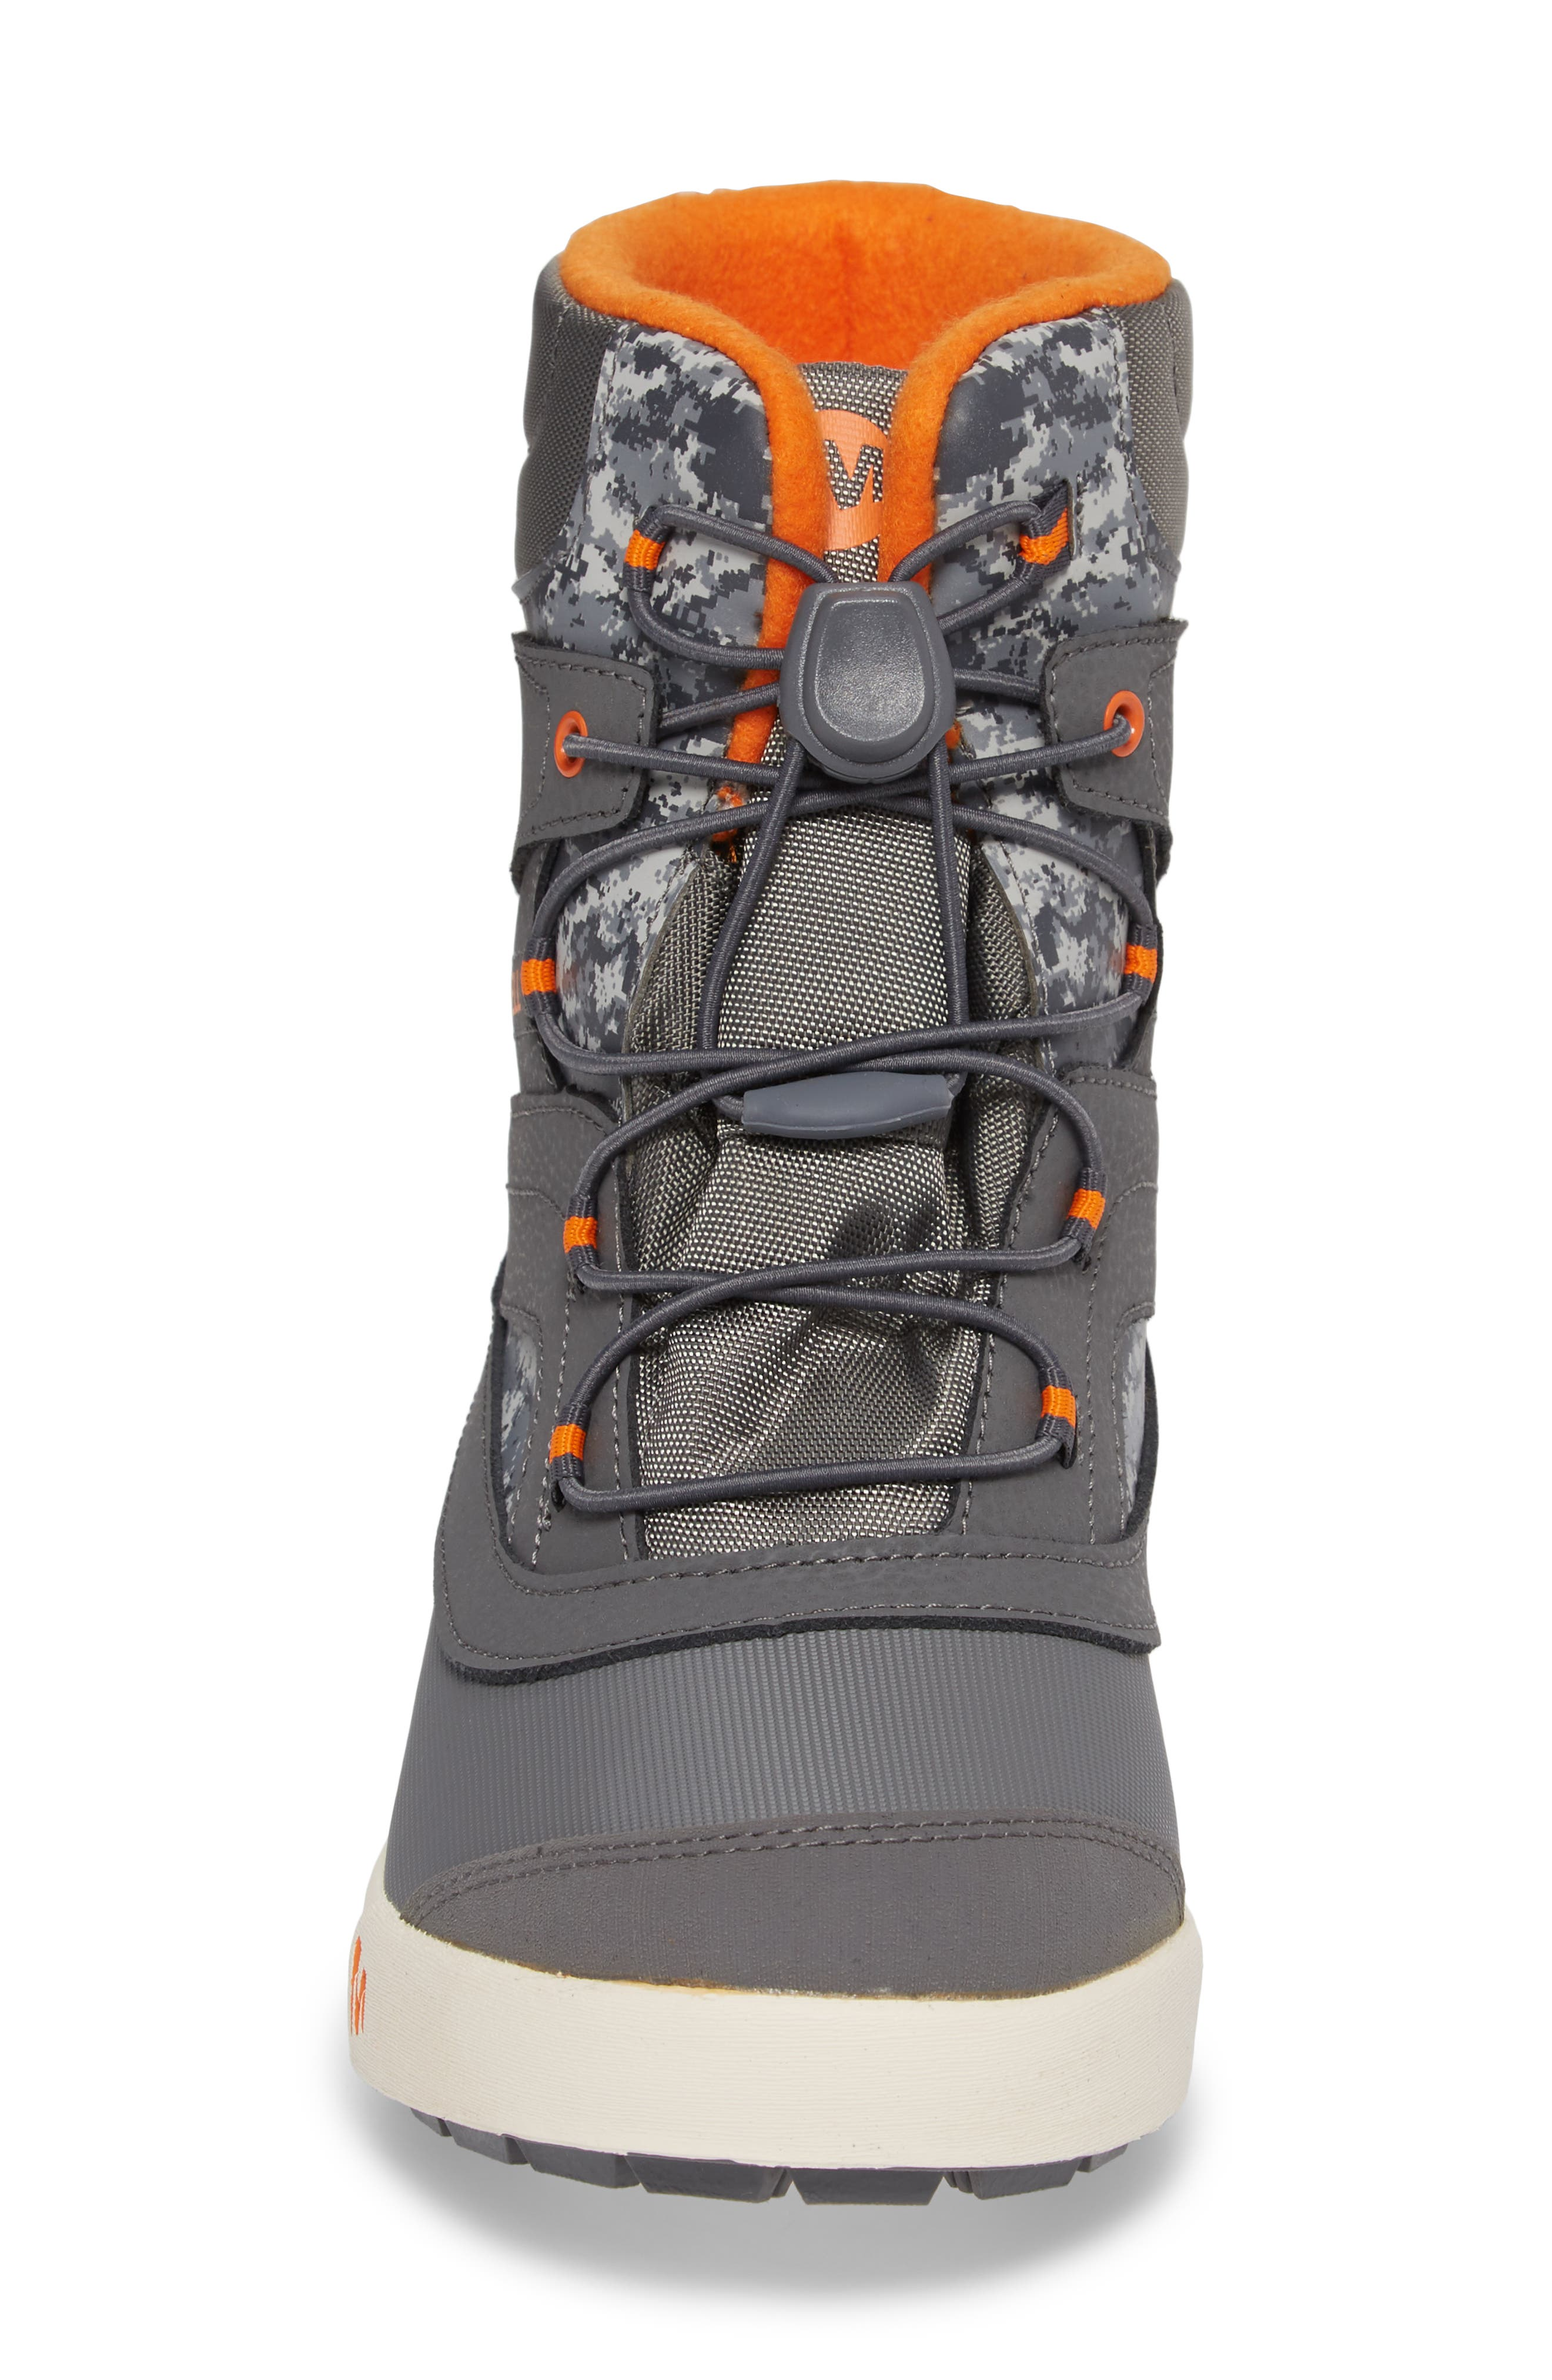 Snow Bank 2 Insulated Waterproof Boot,                             Alternate thumbnail 4, color,                             Grey/ Orange